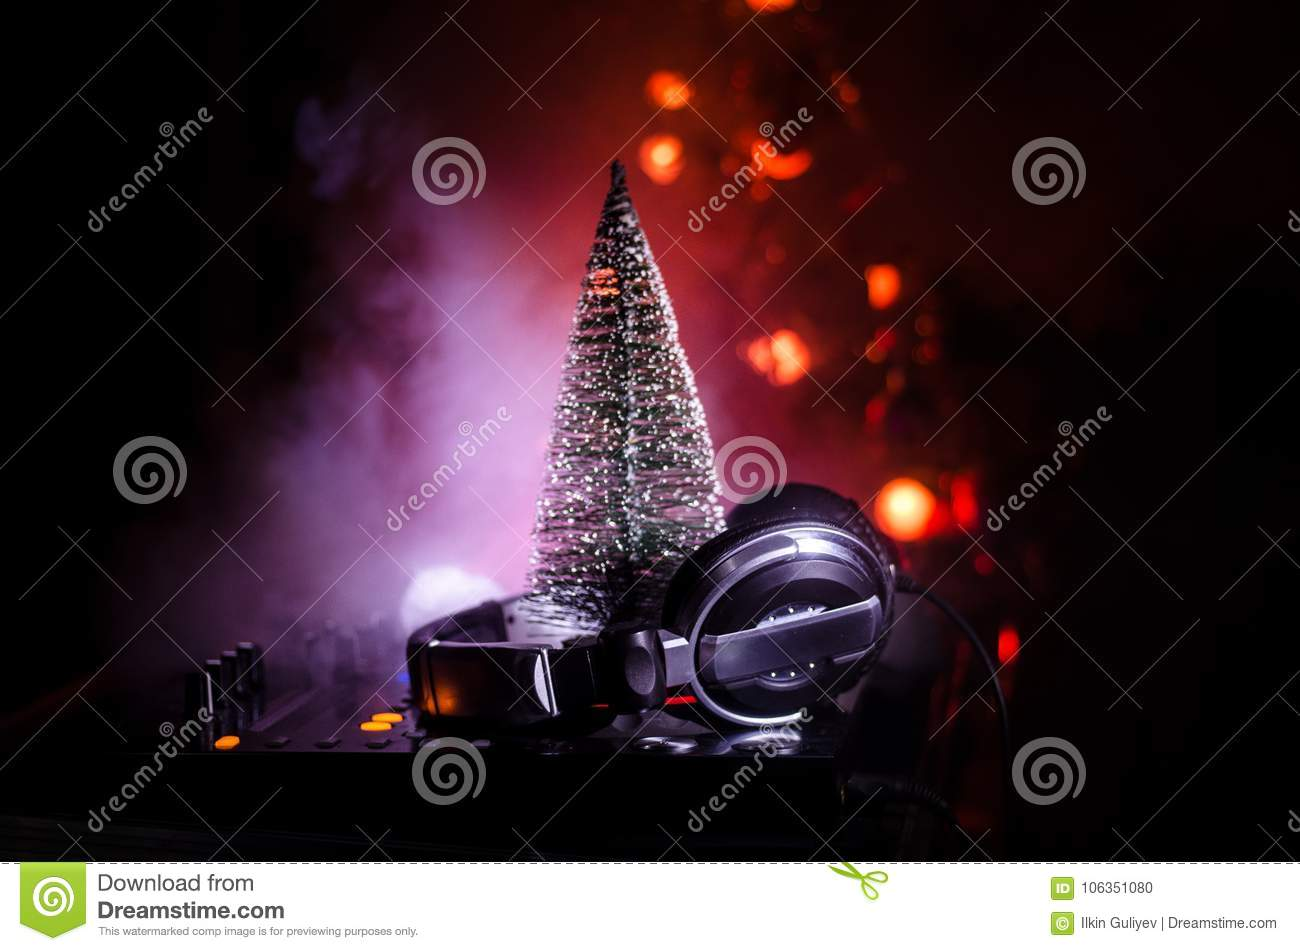 dj mixer with headphones on dark nightclub background with christmas tree new year eve close